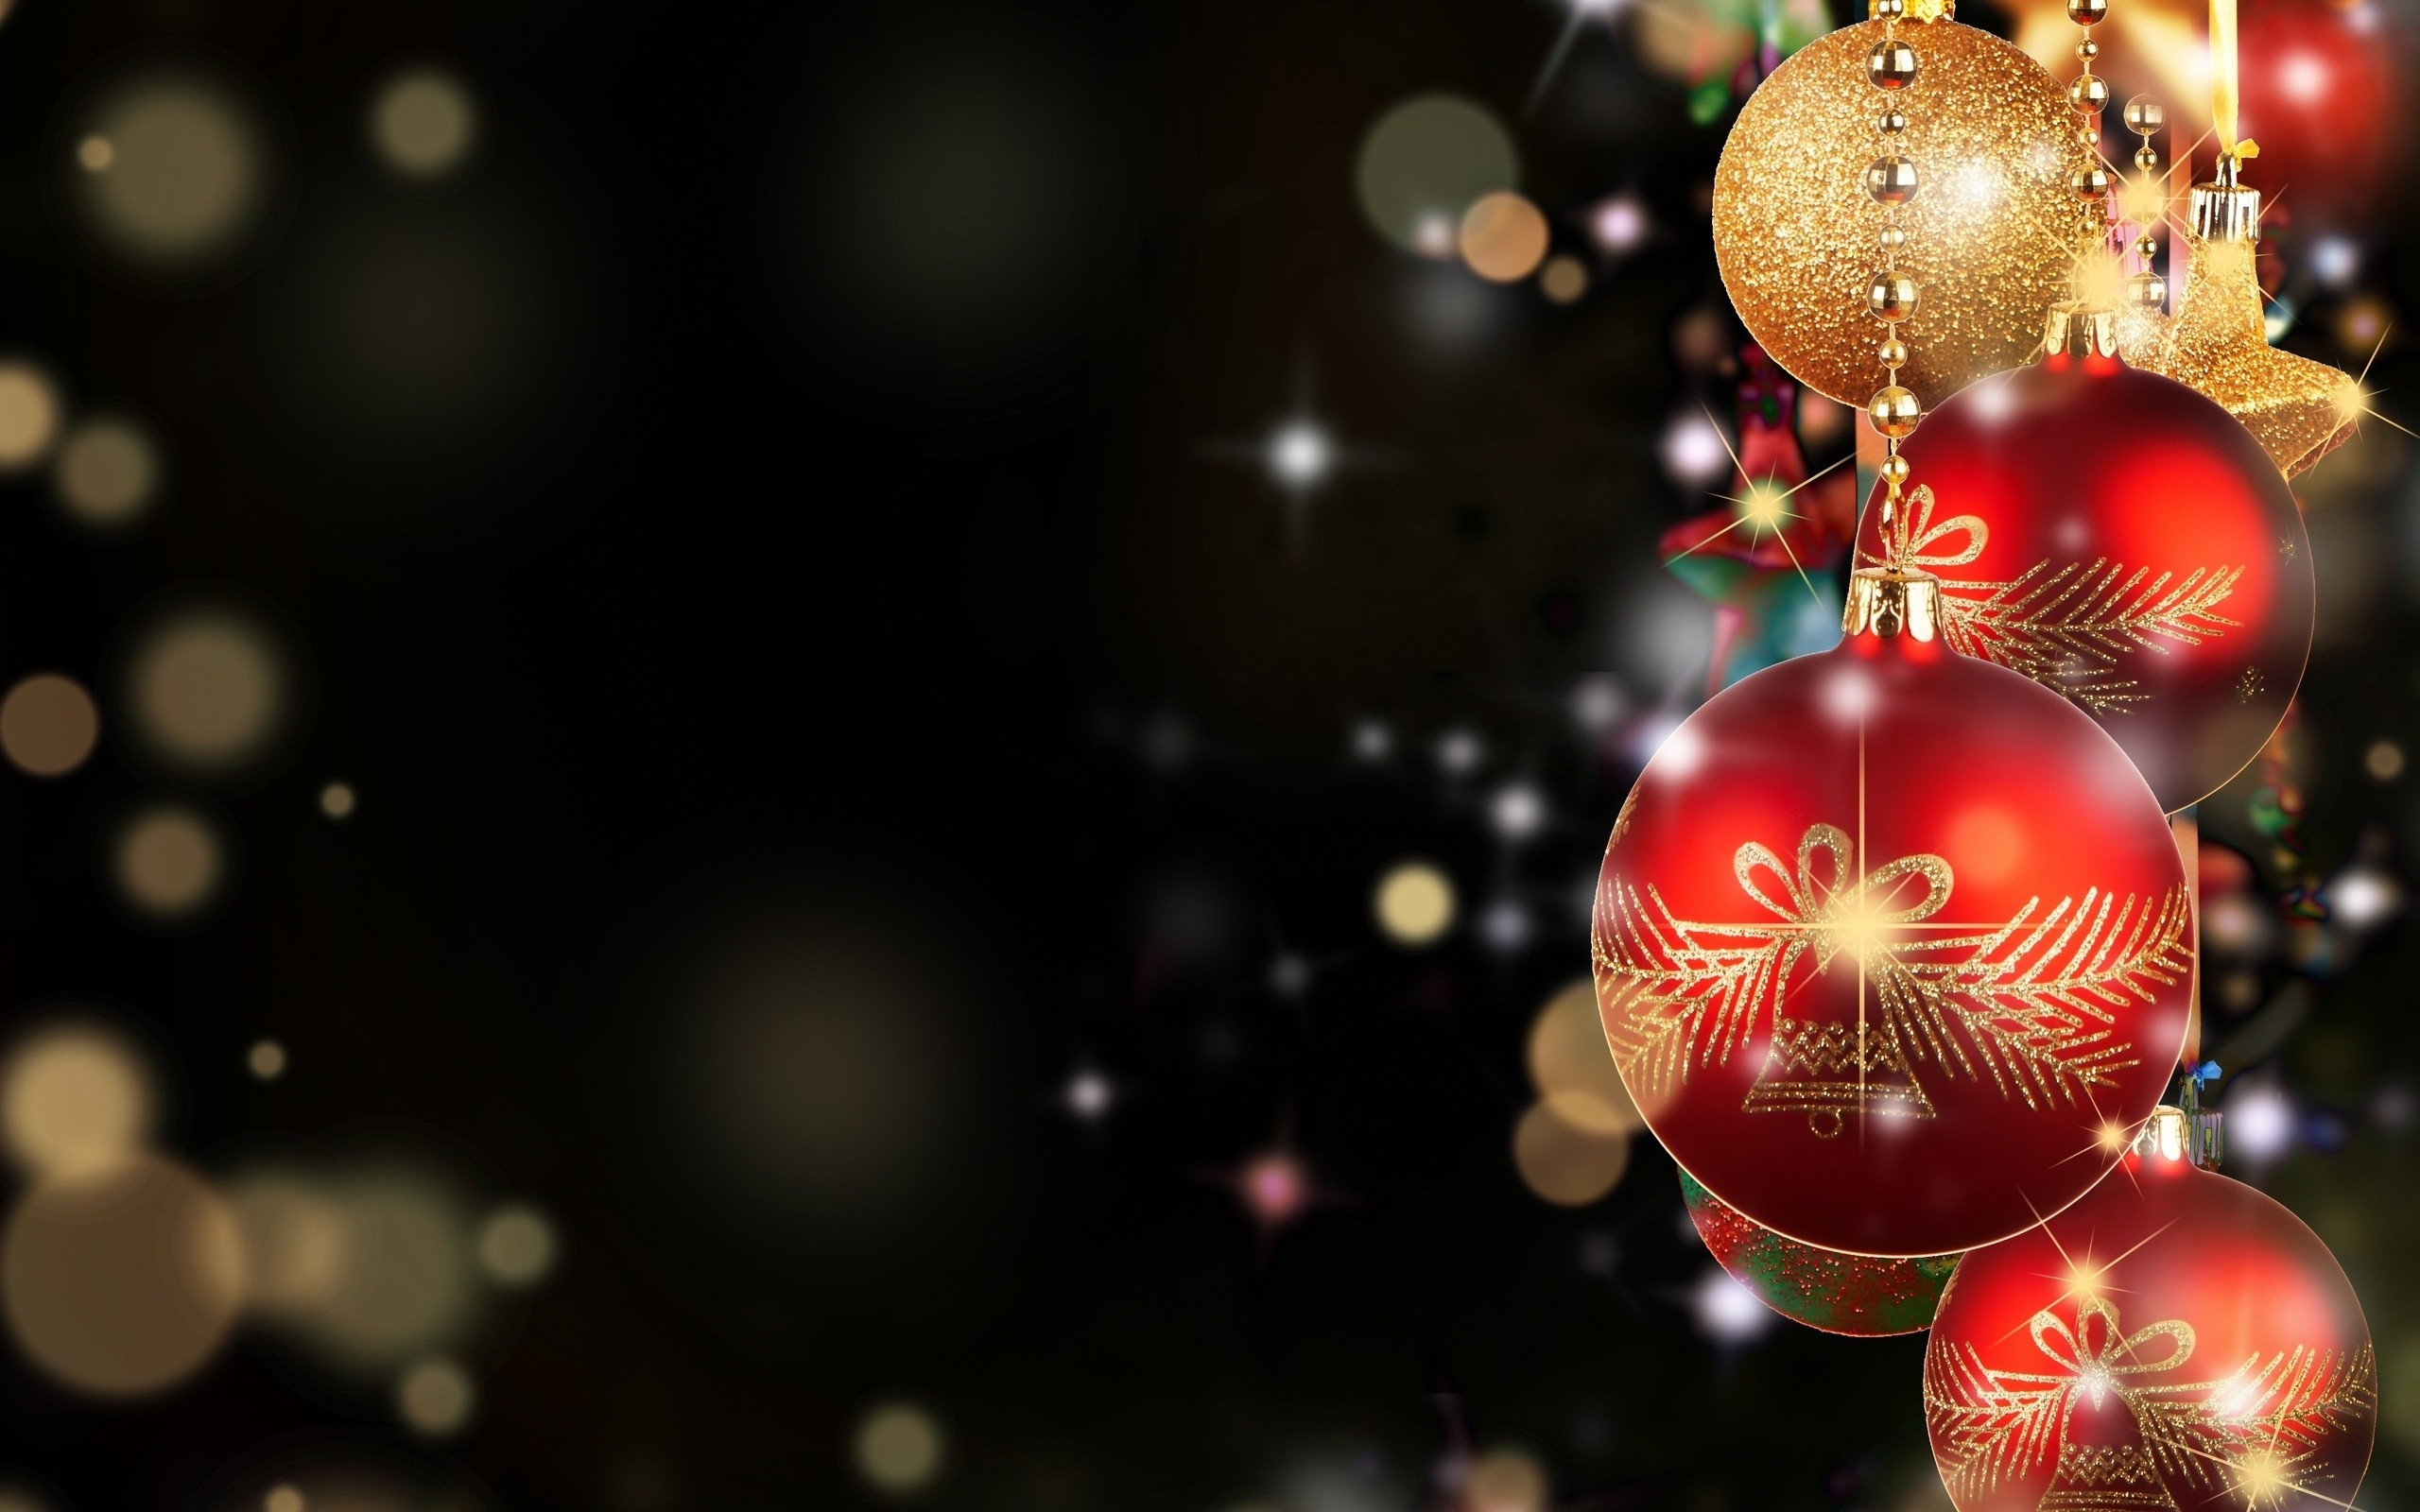 2560x1600 ... Christmas baubles HD Wallpaper